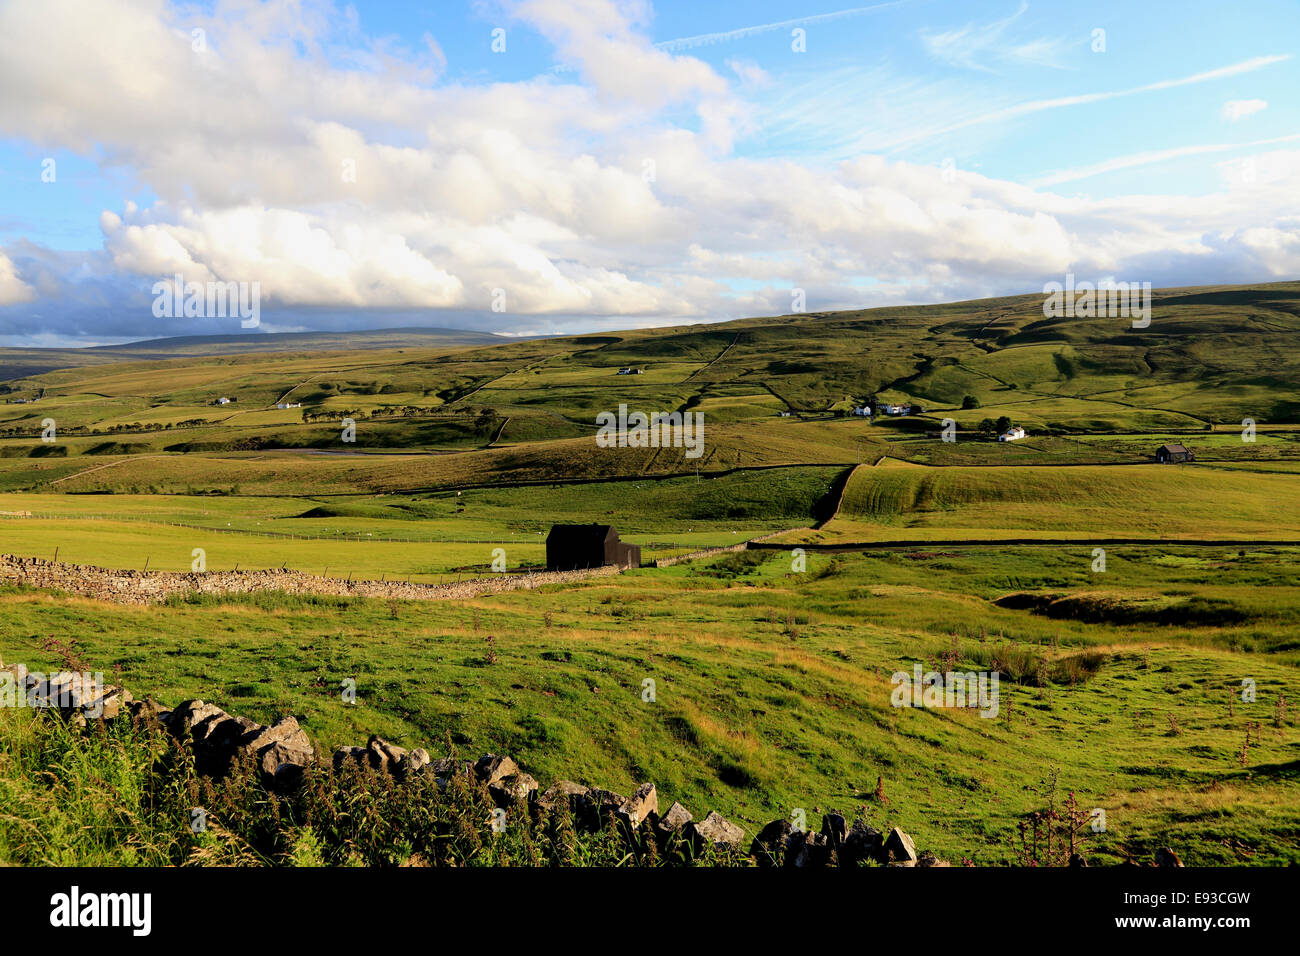 3239. Upper Teesdale, Durham, UK - Stock Image